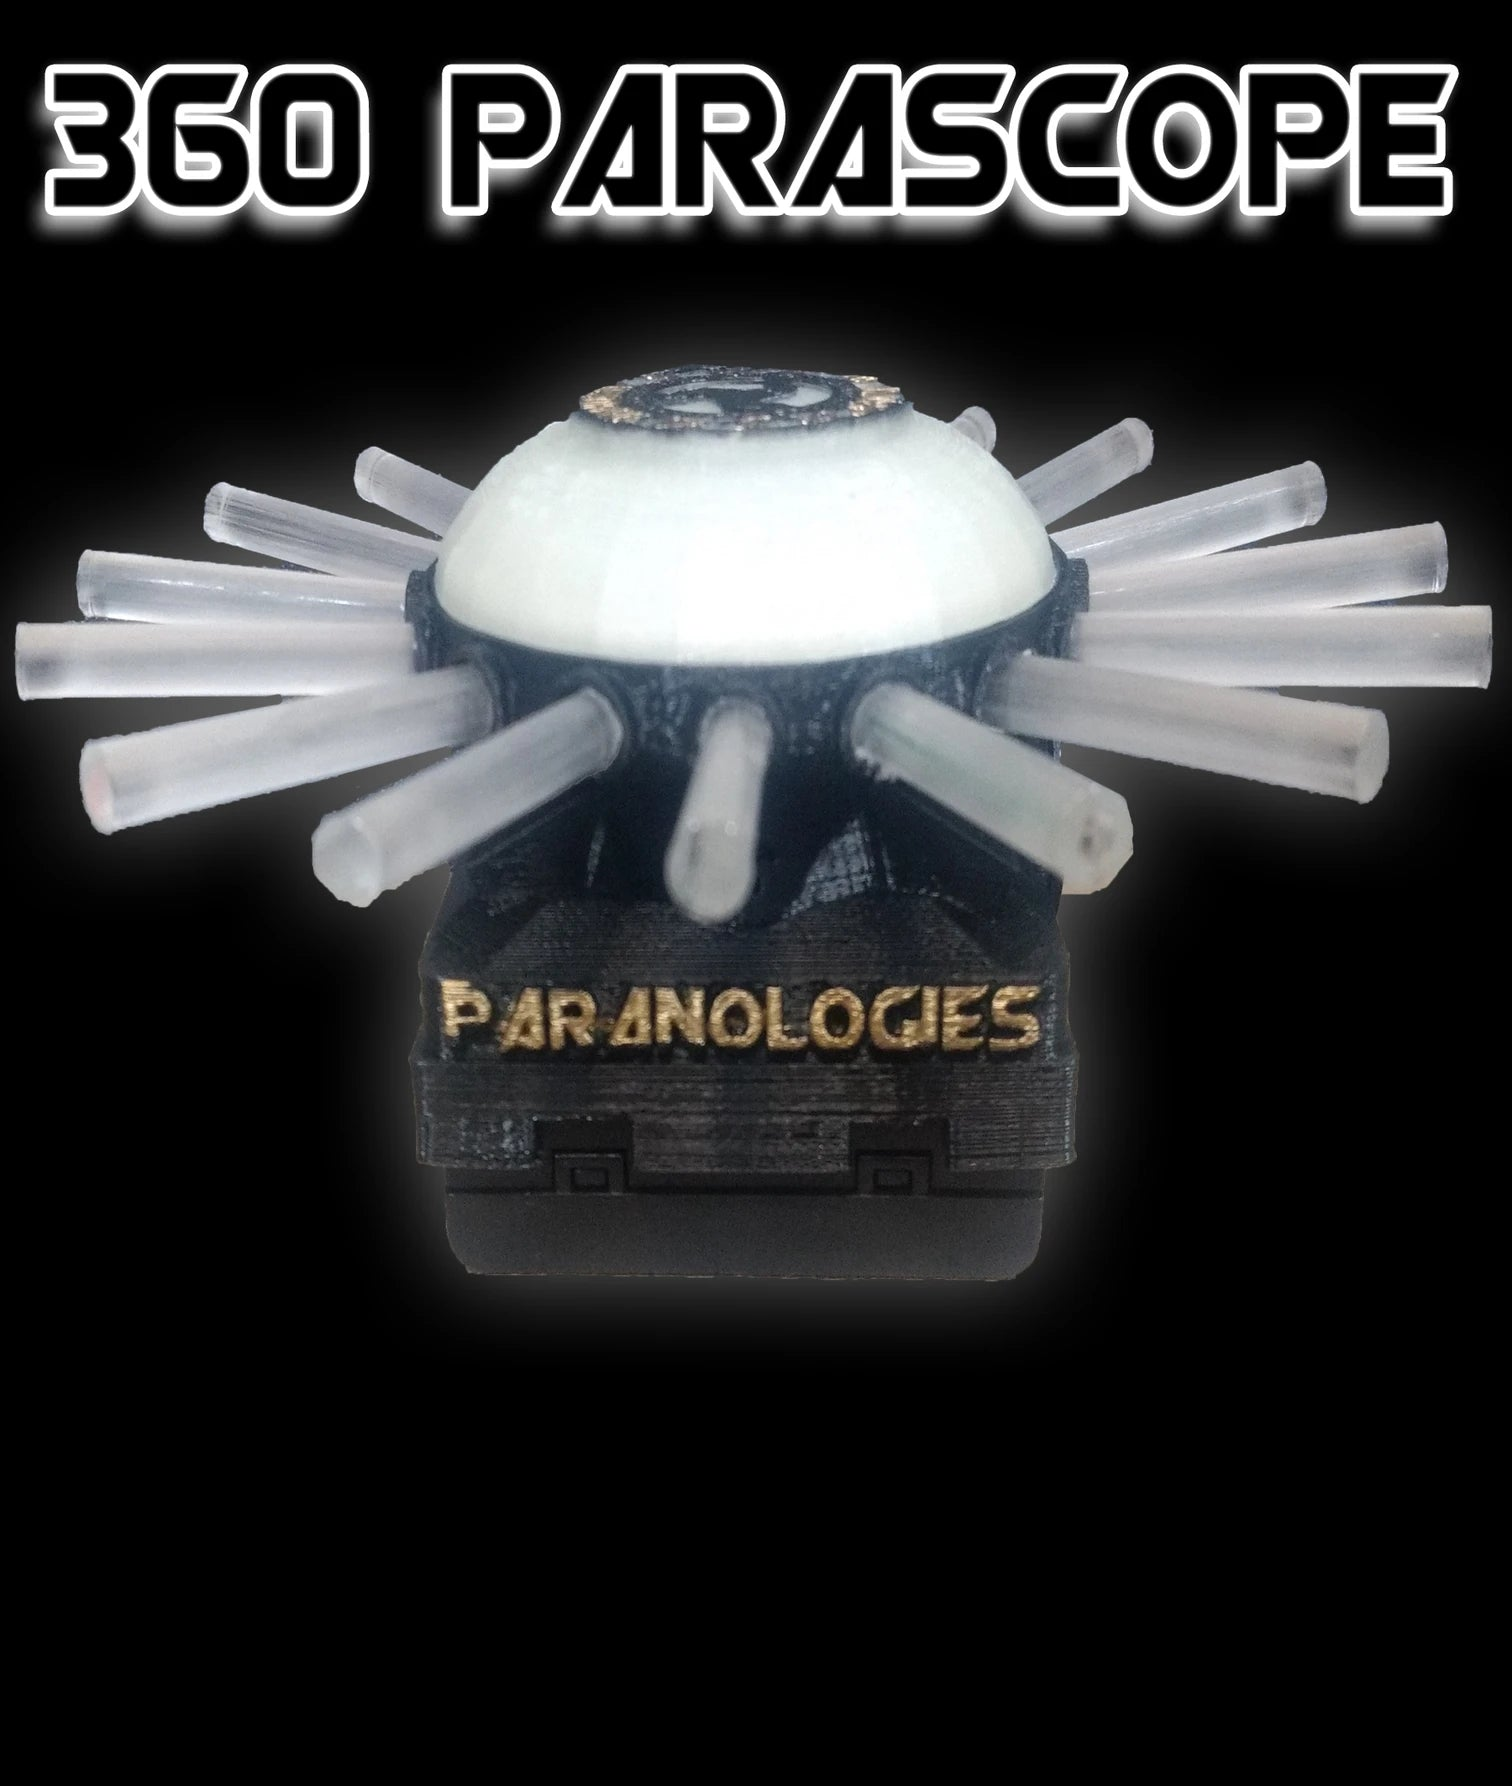 360° Parascope - IN STOCK - READY TO SHIP!!